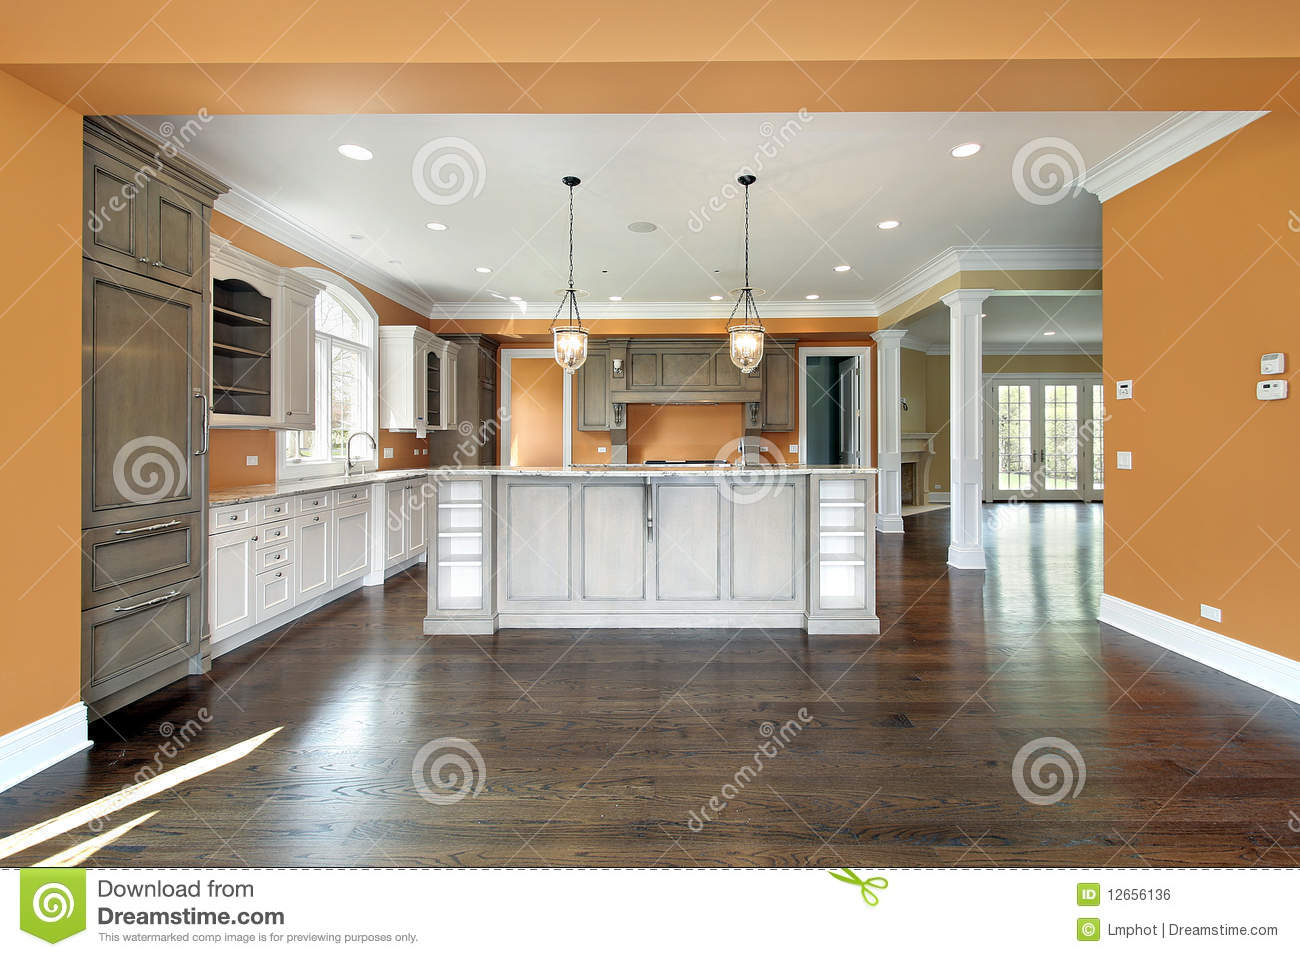 Kitchen with orange walls royalty free stock image image - Kitchen with orange walls ...